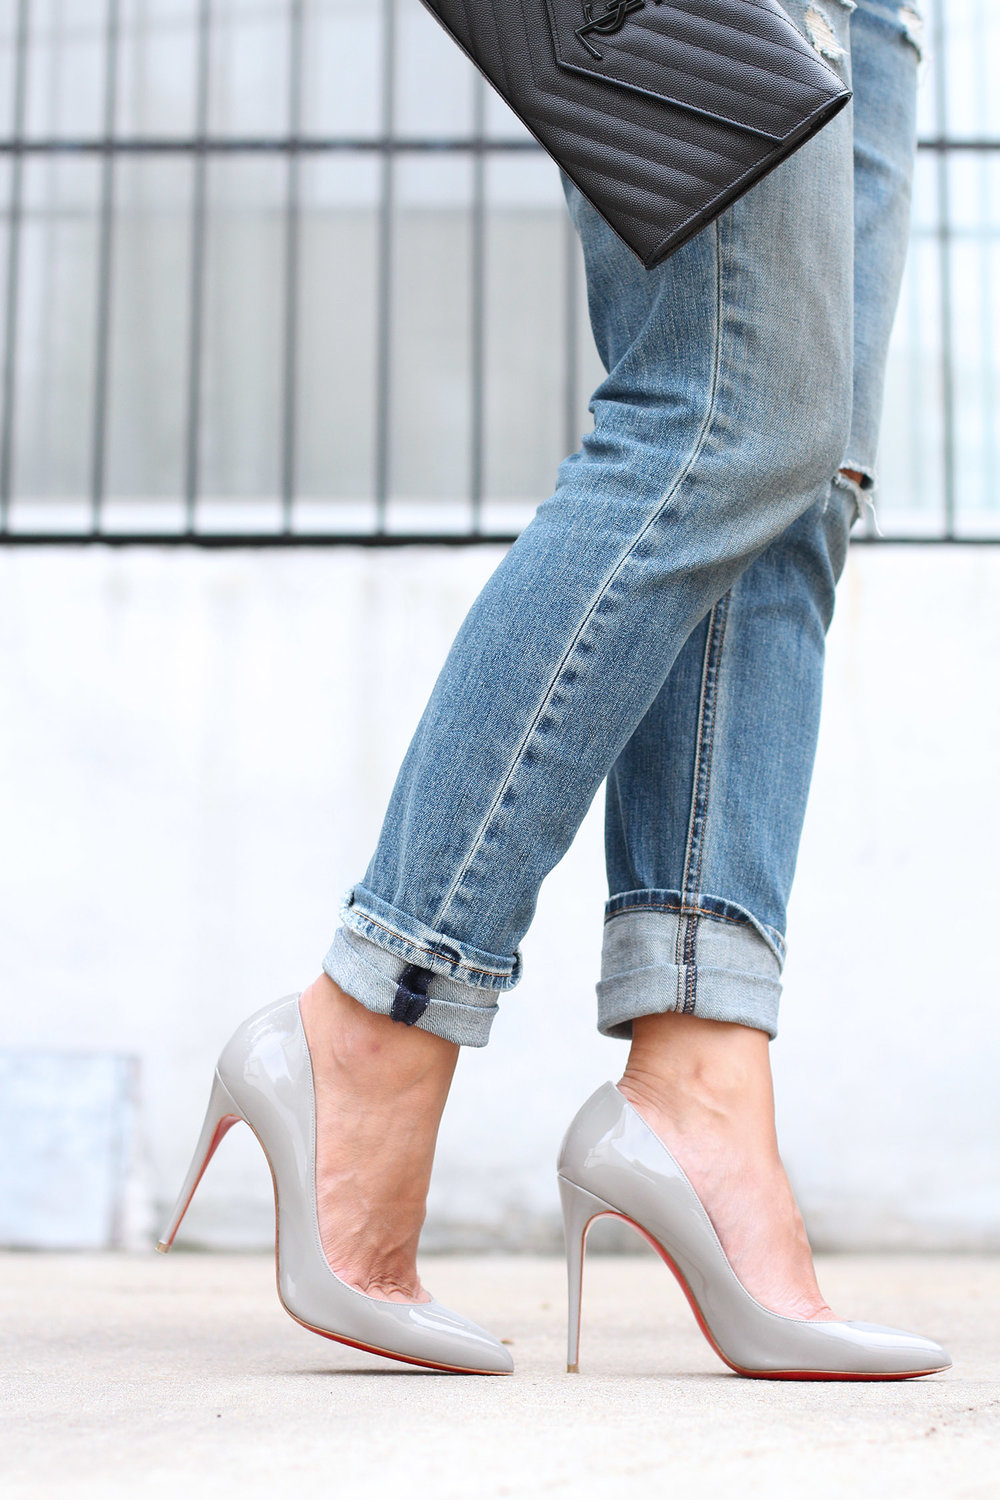 Christian Louboutin Pigalle Follies Patent Leather Grey